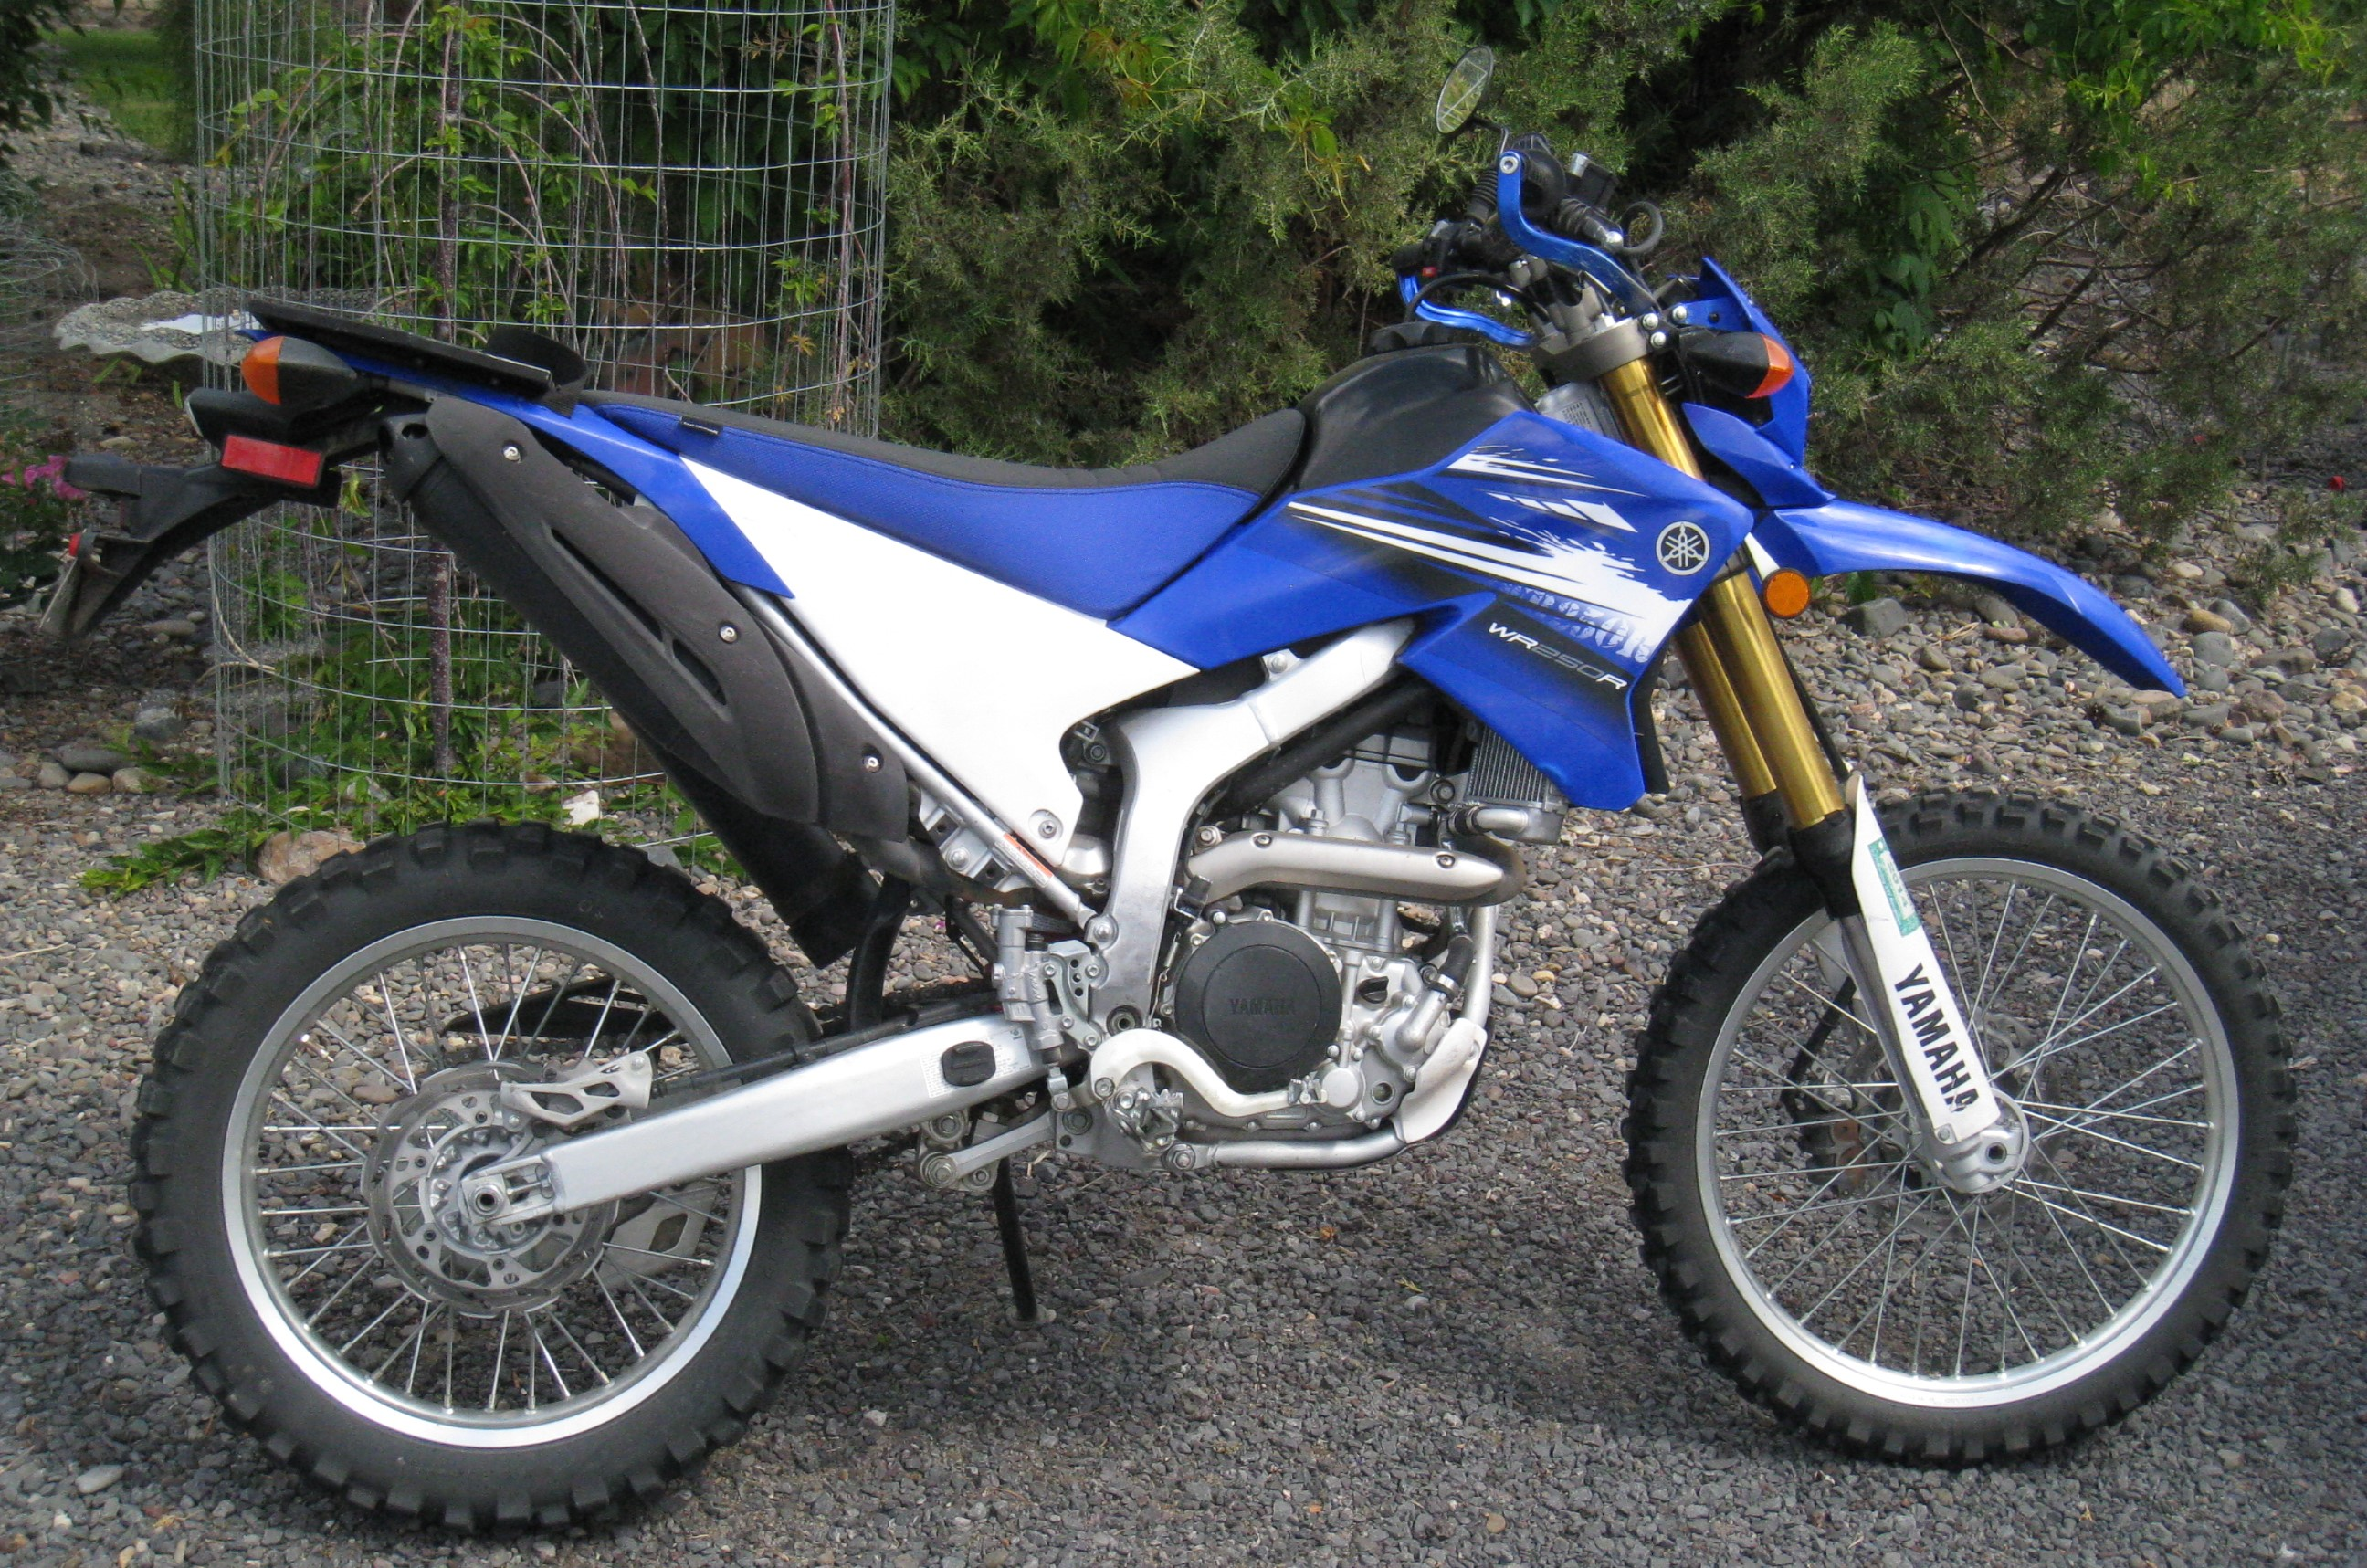 2012 Yamaha Wr 250r  Pics  Specs And Information